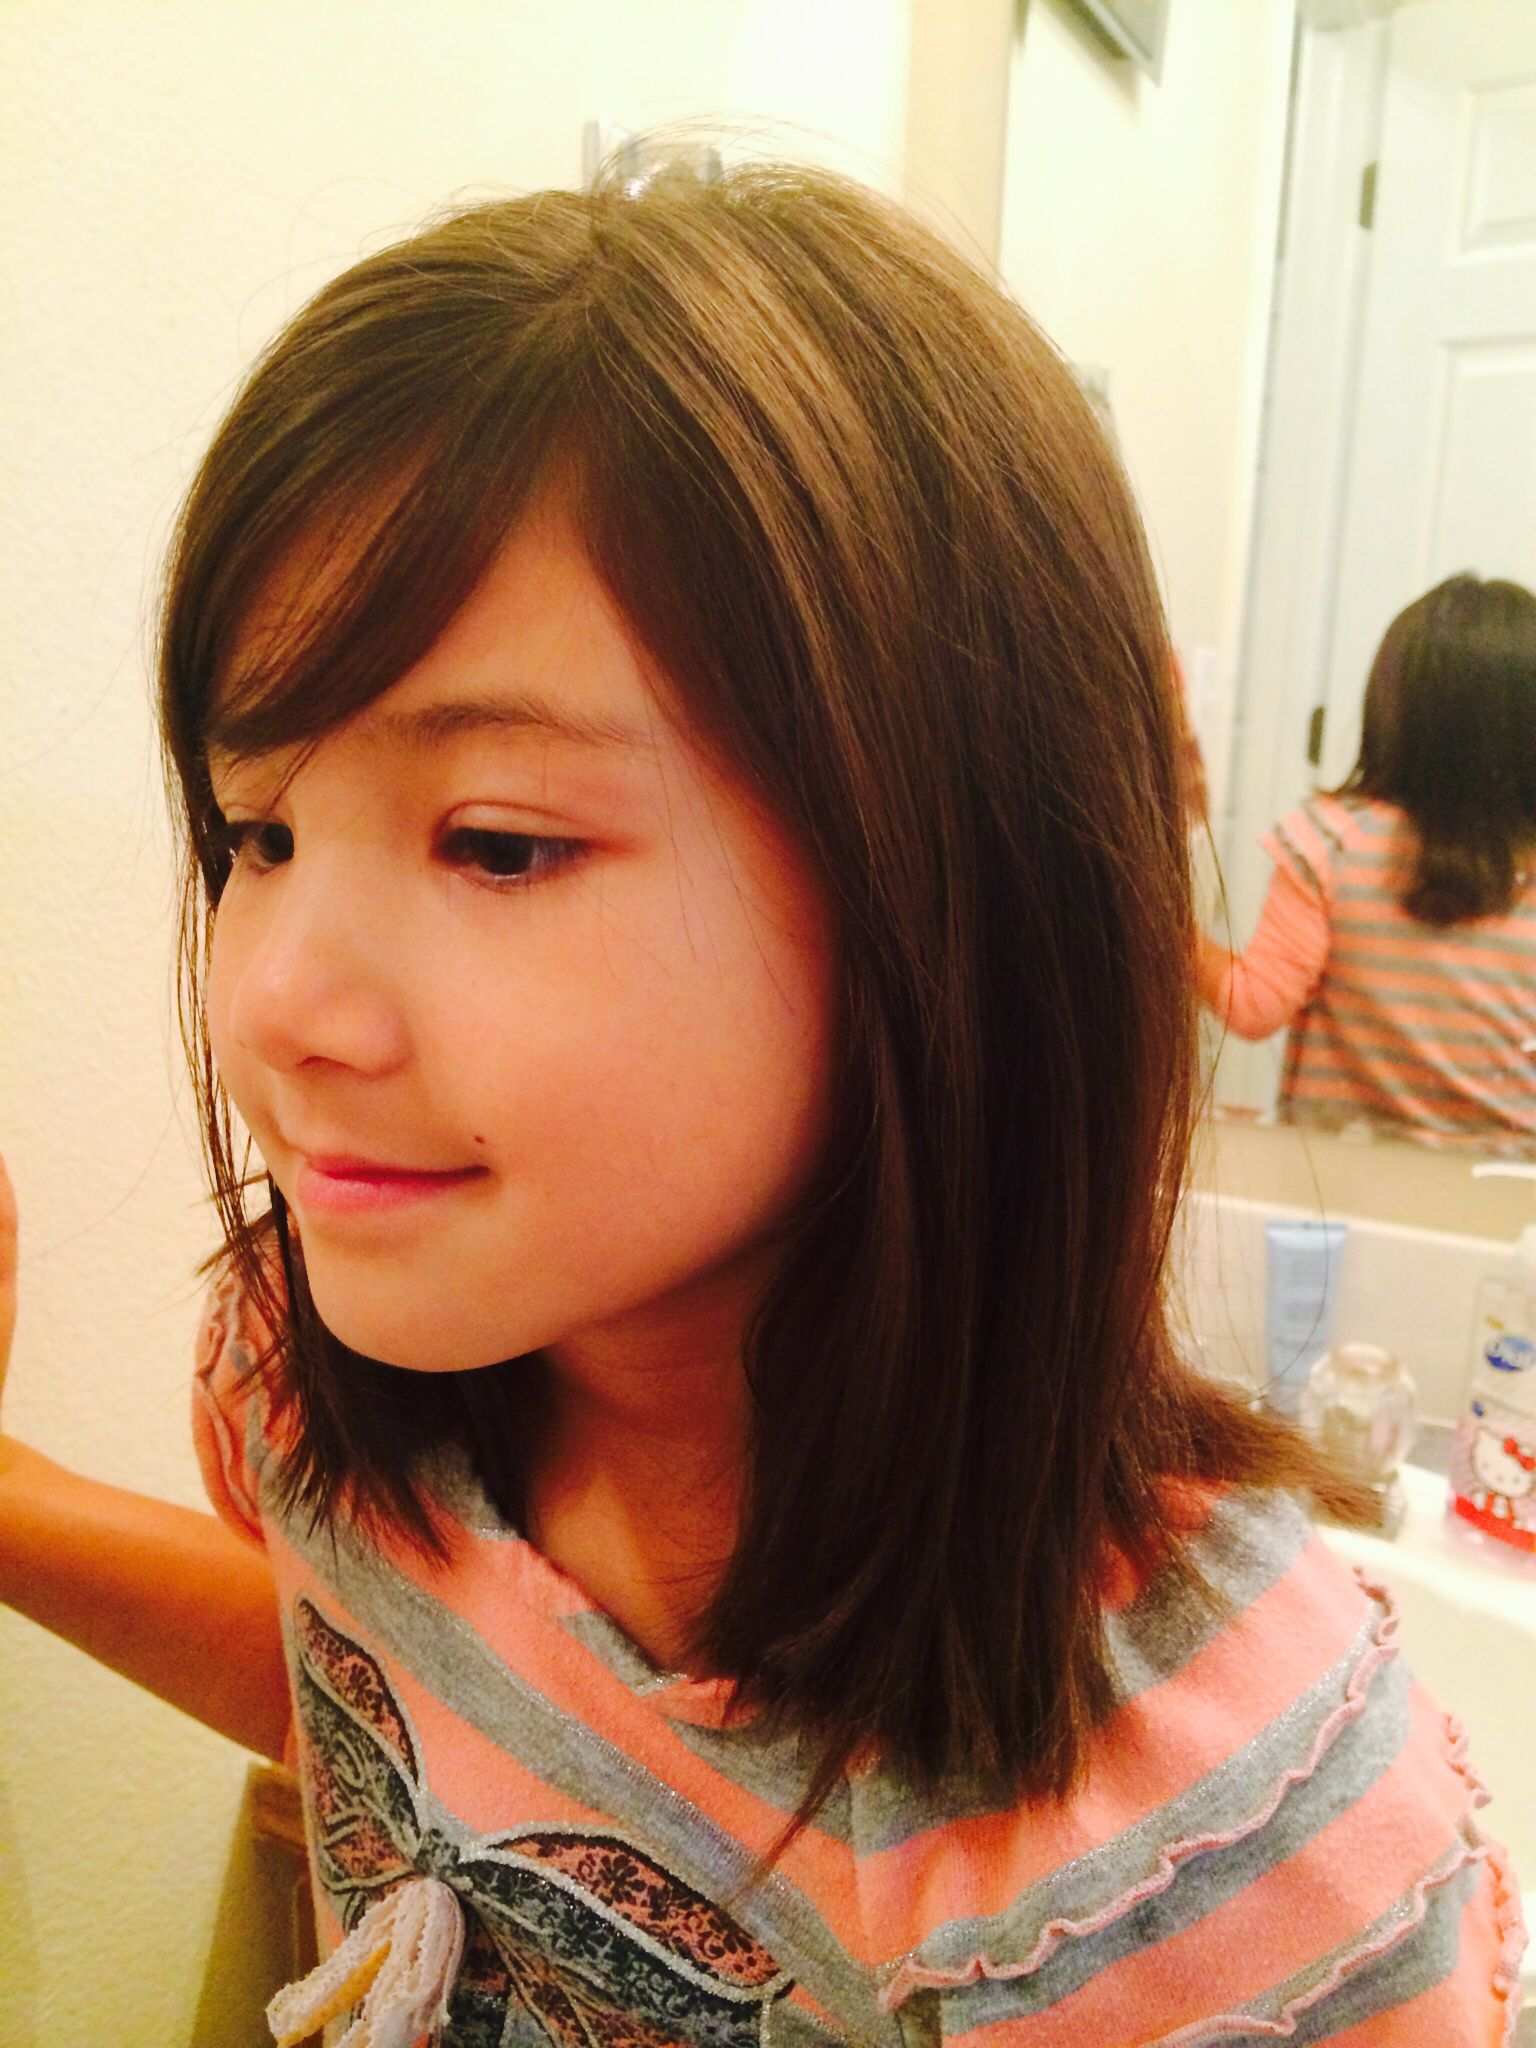 Medium Length Little Girl Hair Cut Hairstyles For Little Girls